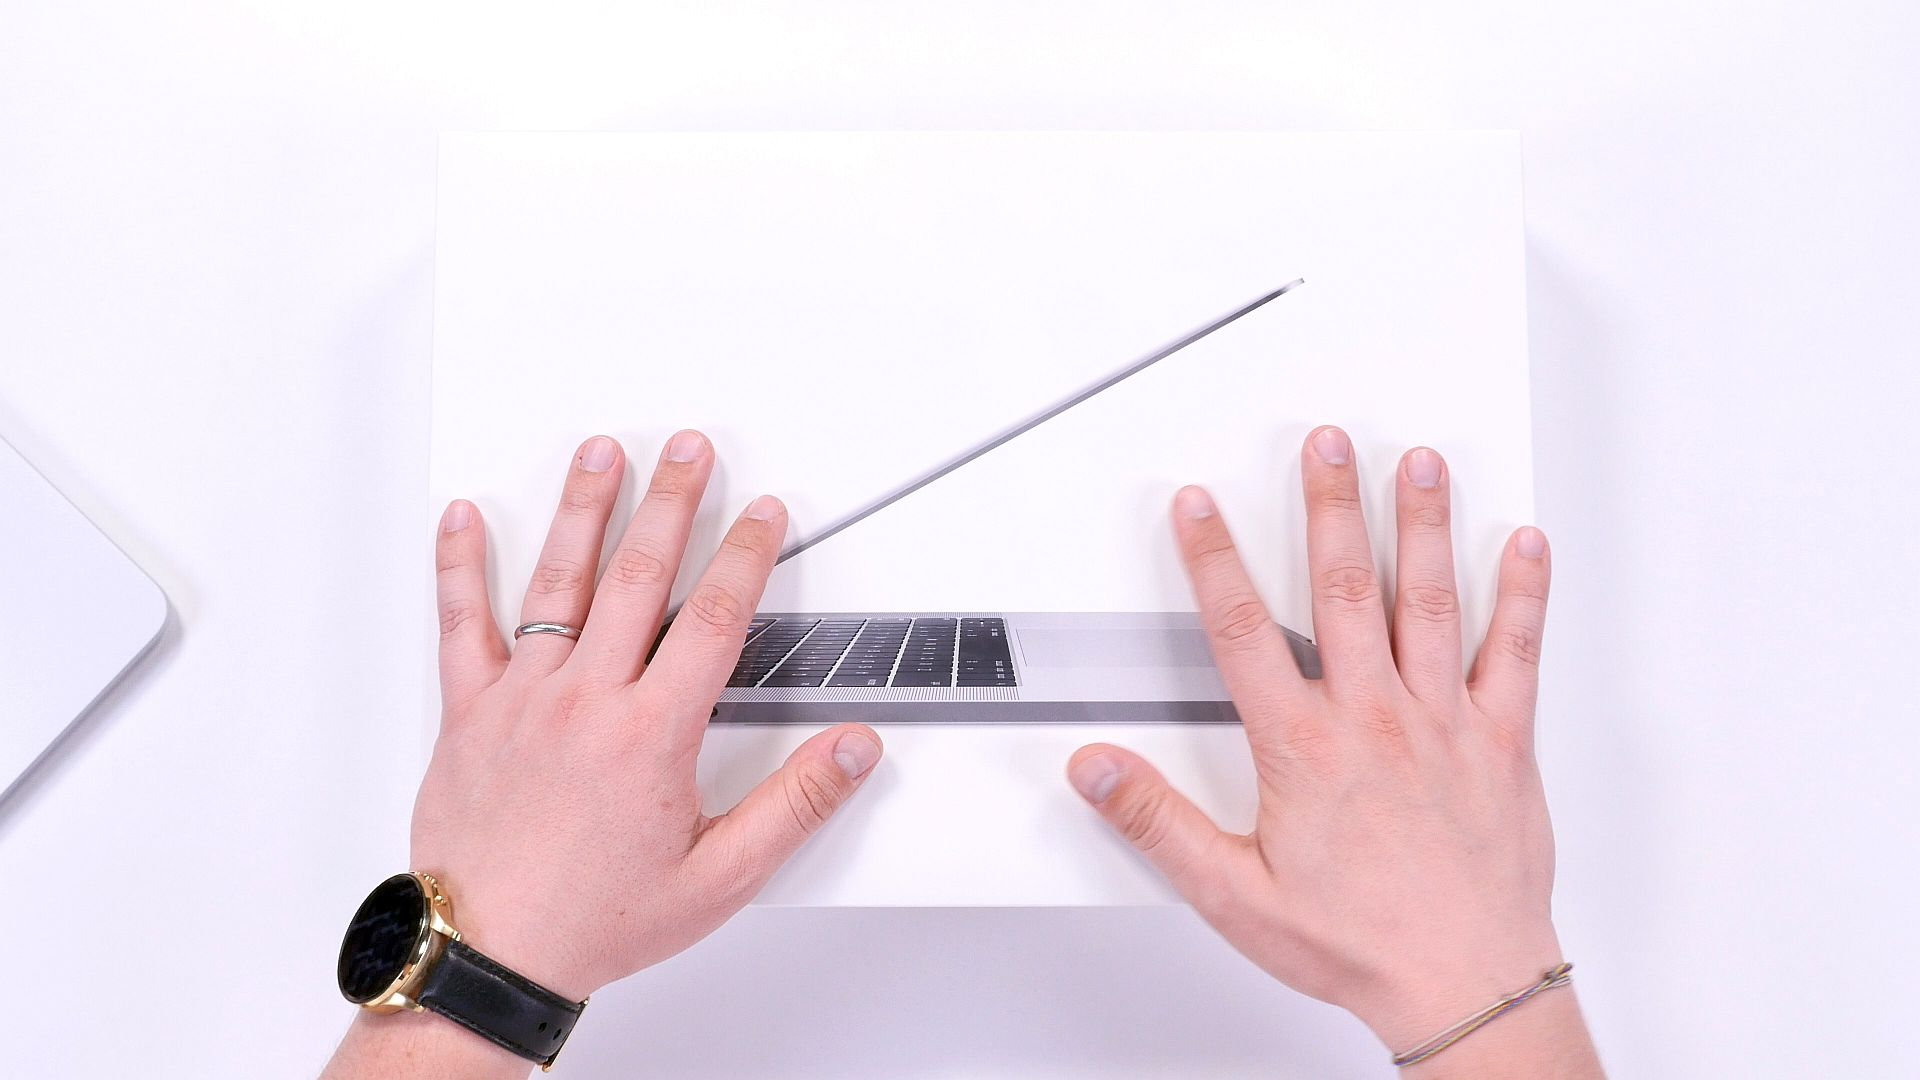 MACBOOK_15_PRO_RETINA_TOUCHBAR_2016_REVIEW_UNBOXING_BUHNICI1